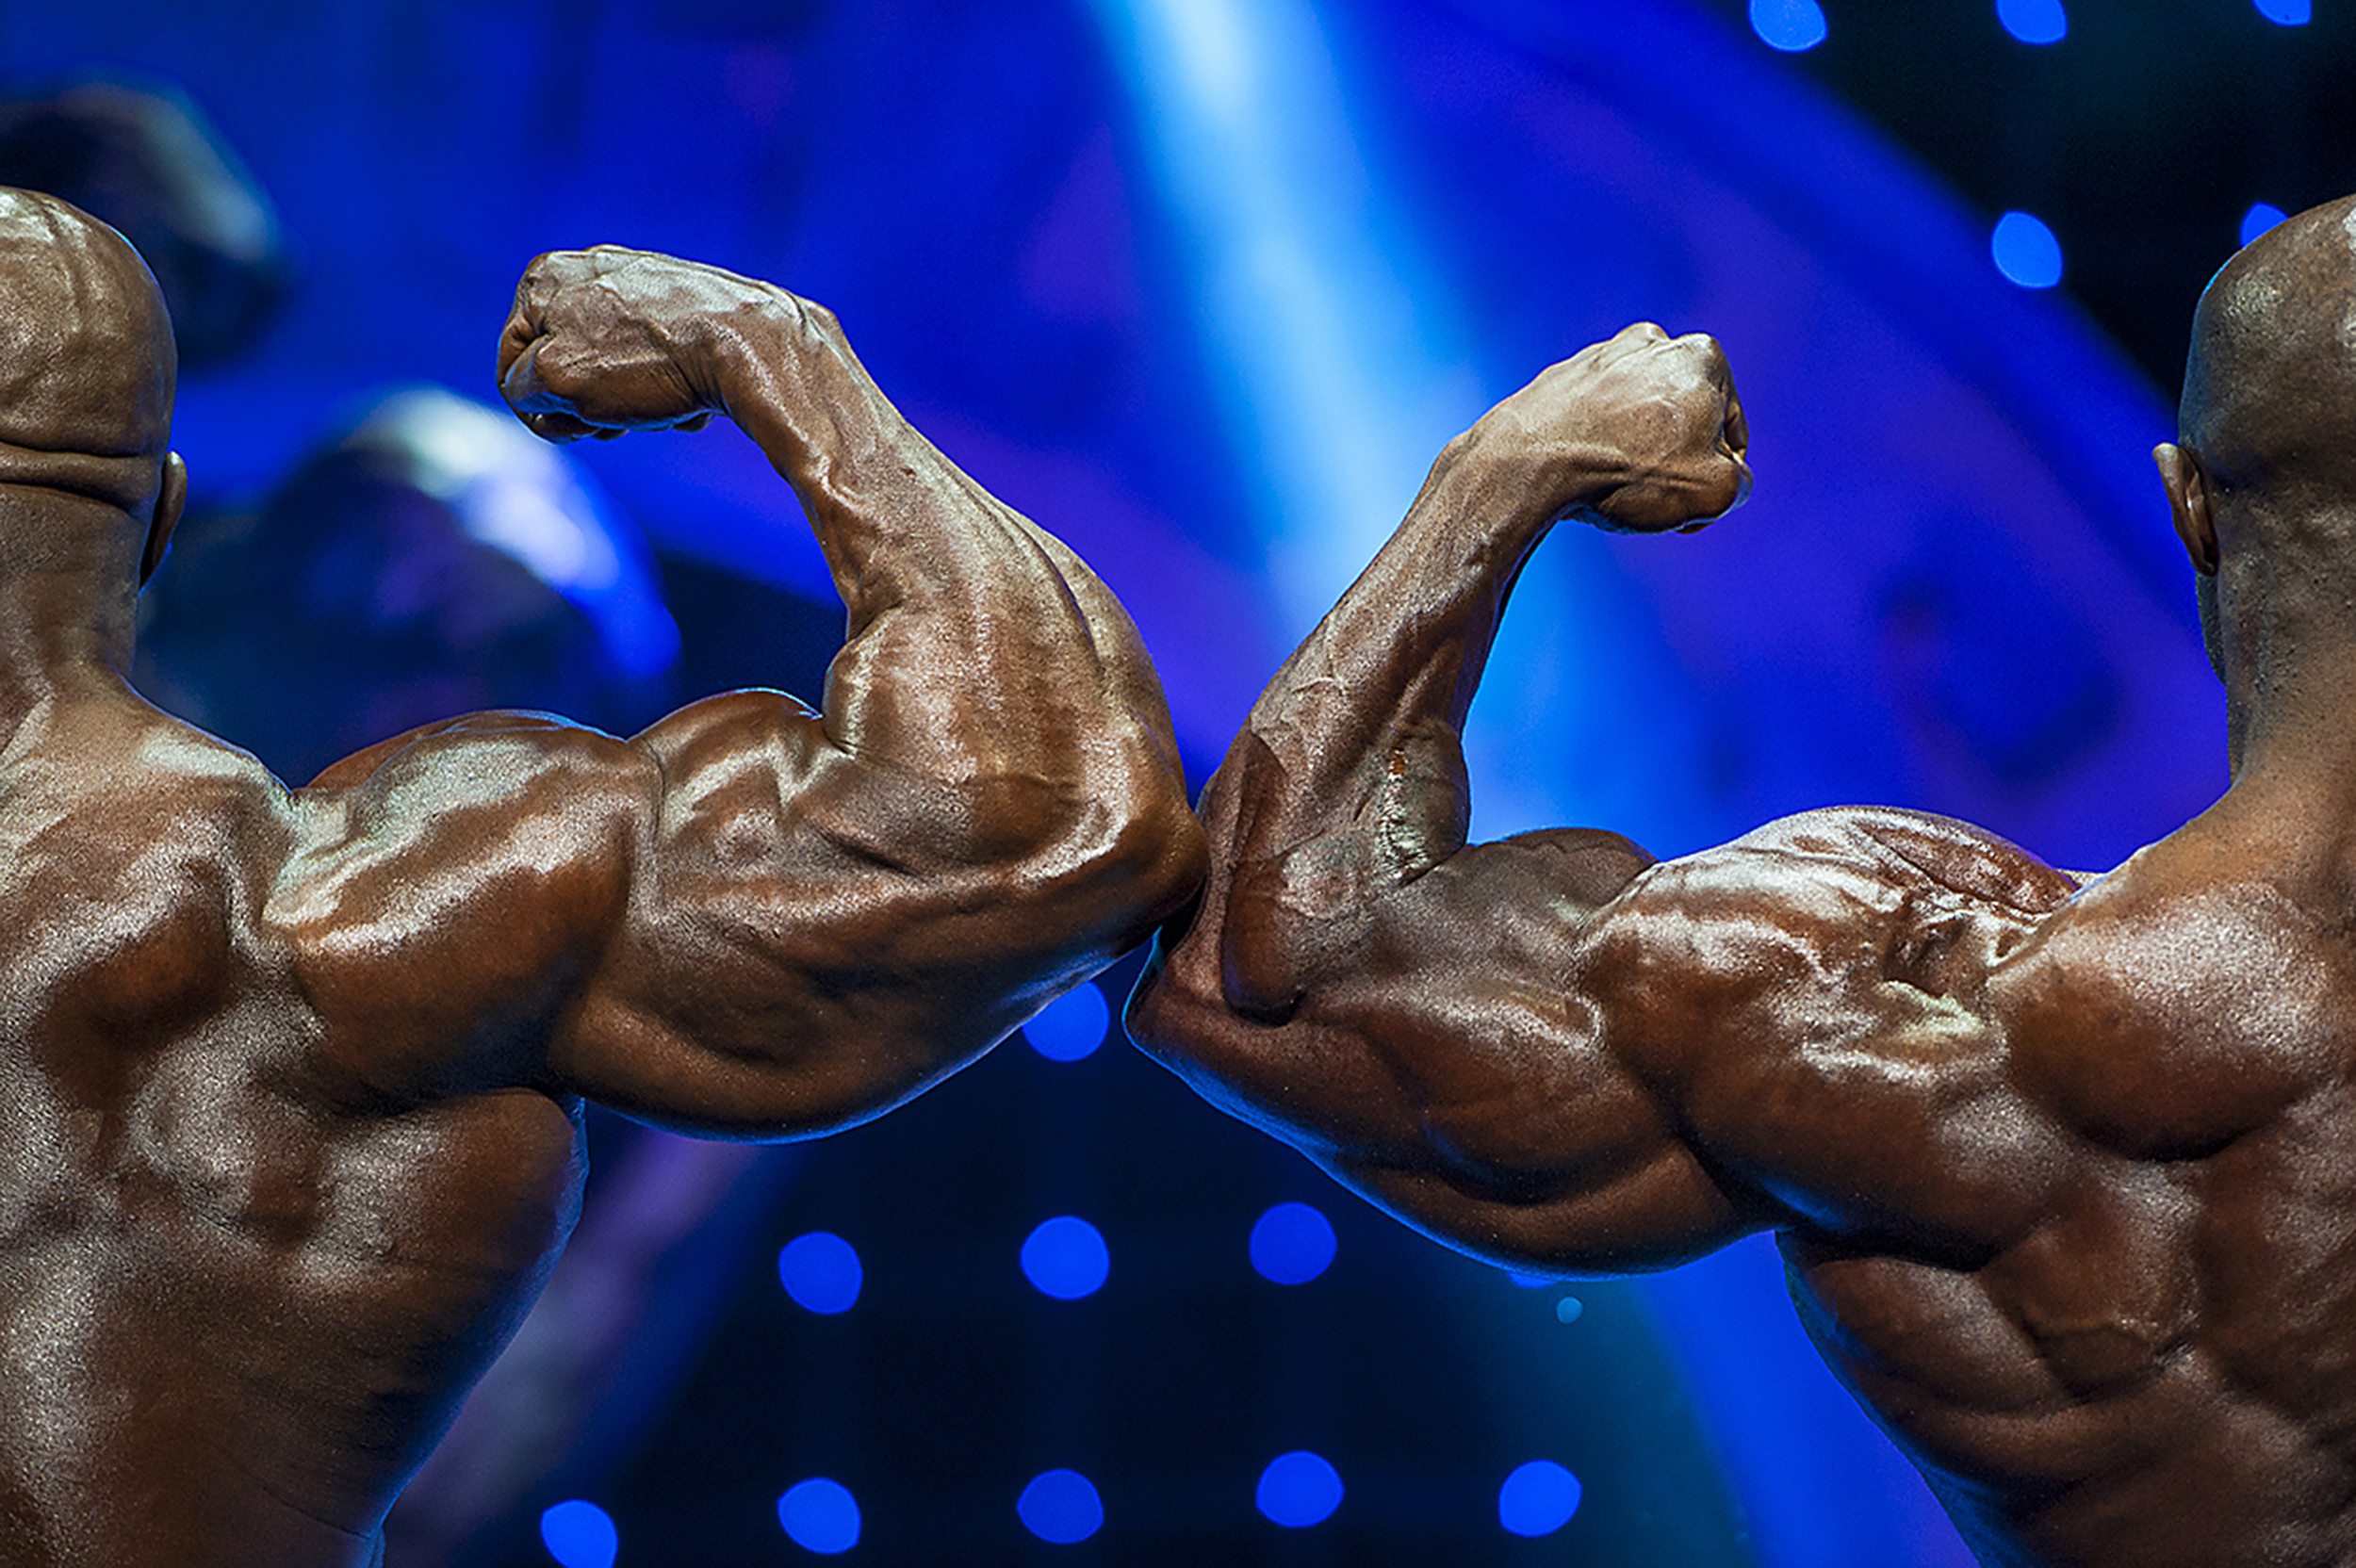 Professional bodybuilders Cedric McMillian (left) and Brandon Curry (right) show off their back muscles for the judges while on stage at the Veterans Memorial Auditorium in Columbus, Ohio, during the 26th annual IFBB Arnold Classic on March 1, 2014.